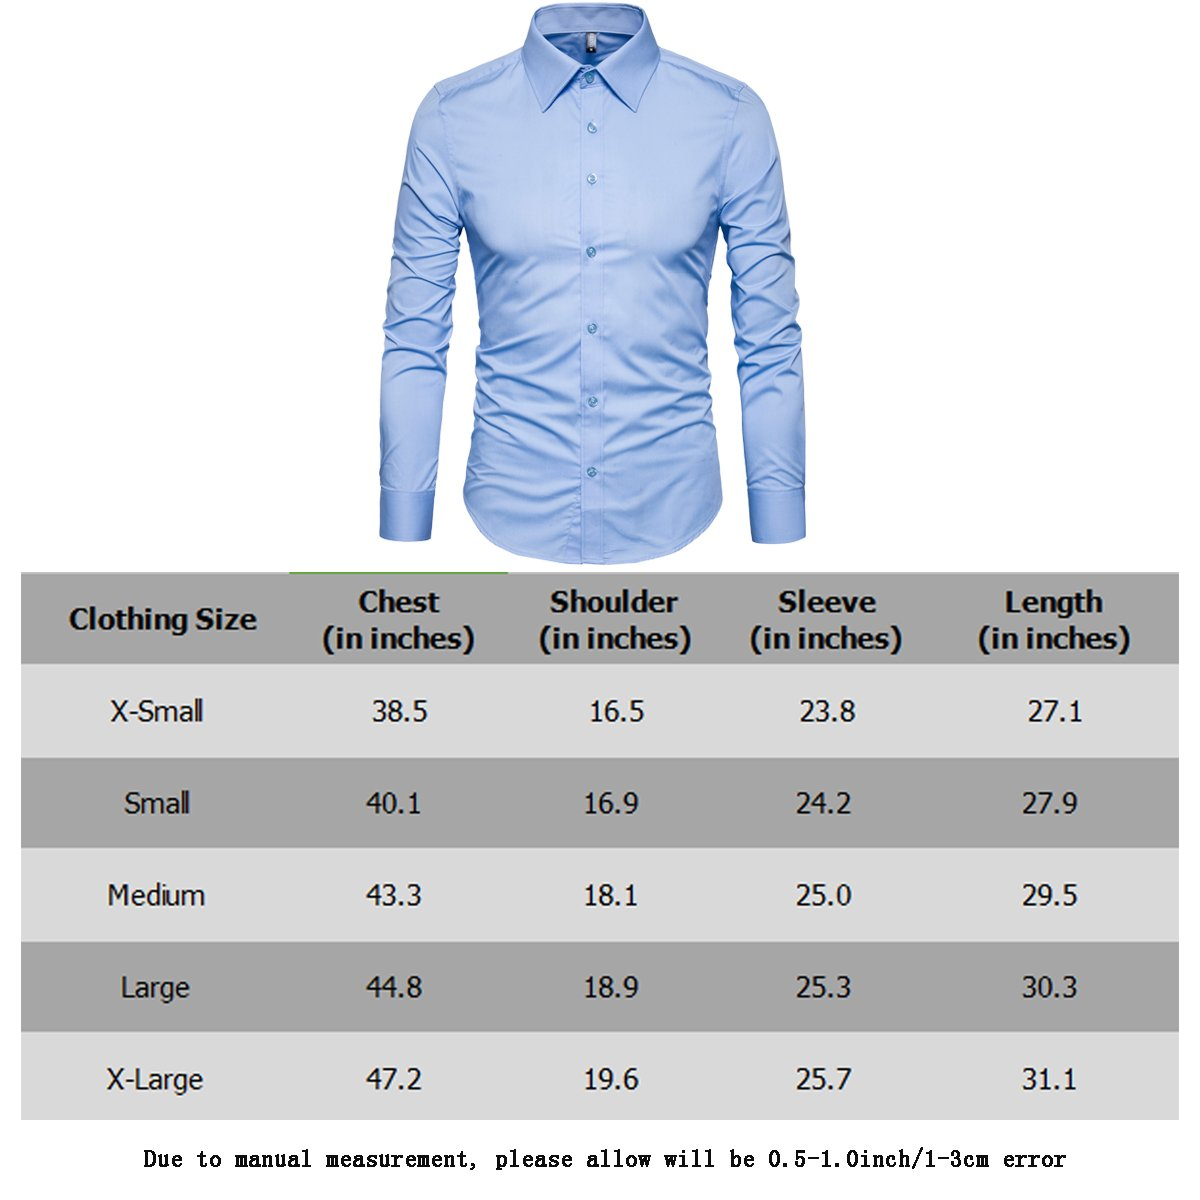 Manwan walk Men's Slim Fit Business Casual Cotton Long Sleeves Solid Button Down Dress Shirts (Large, Wine red) by Manwan walk (Image #7)